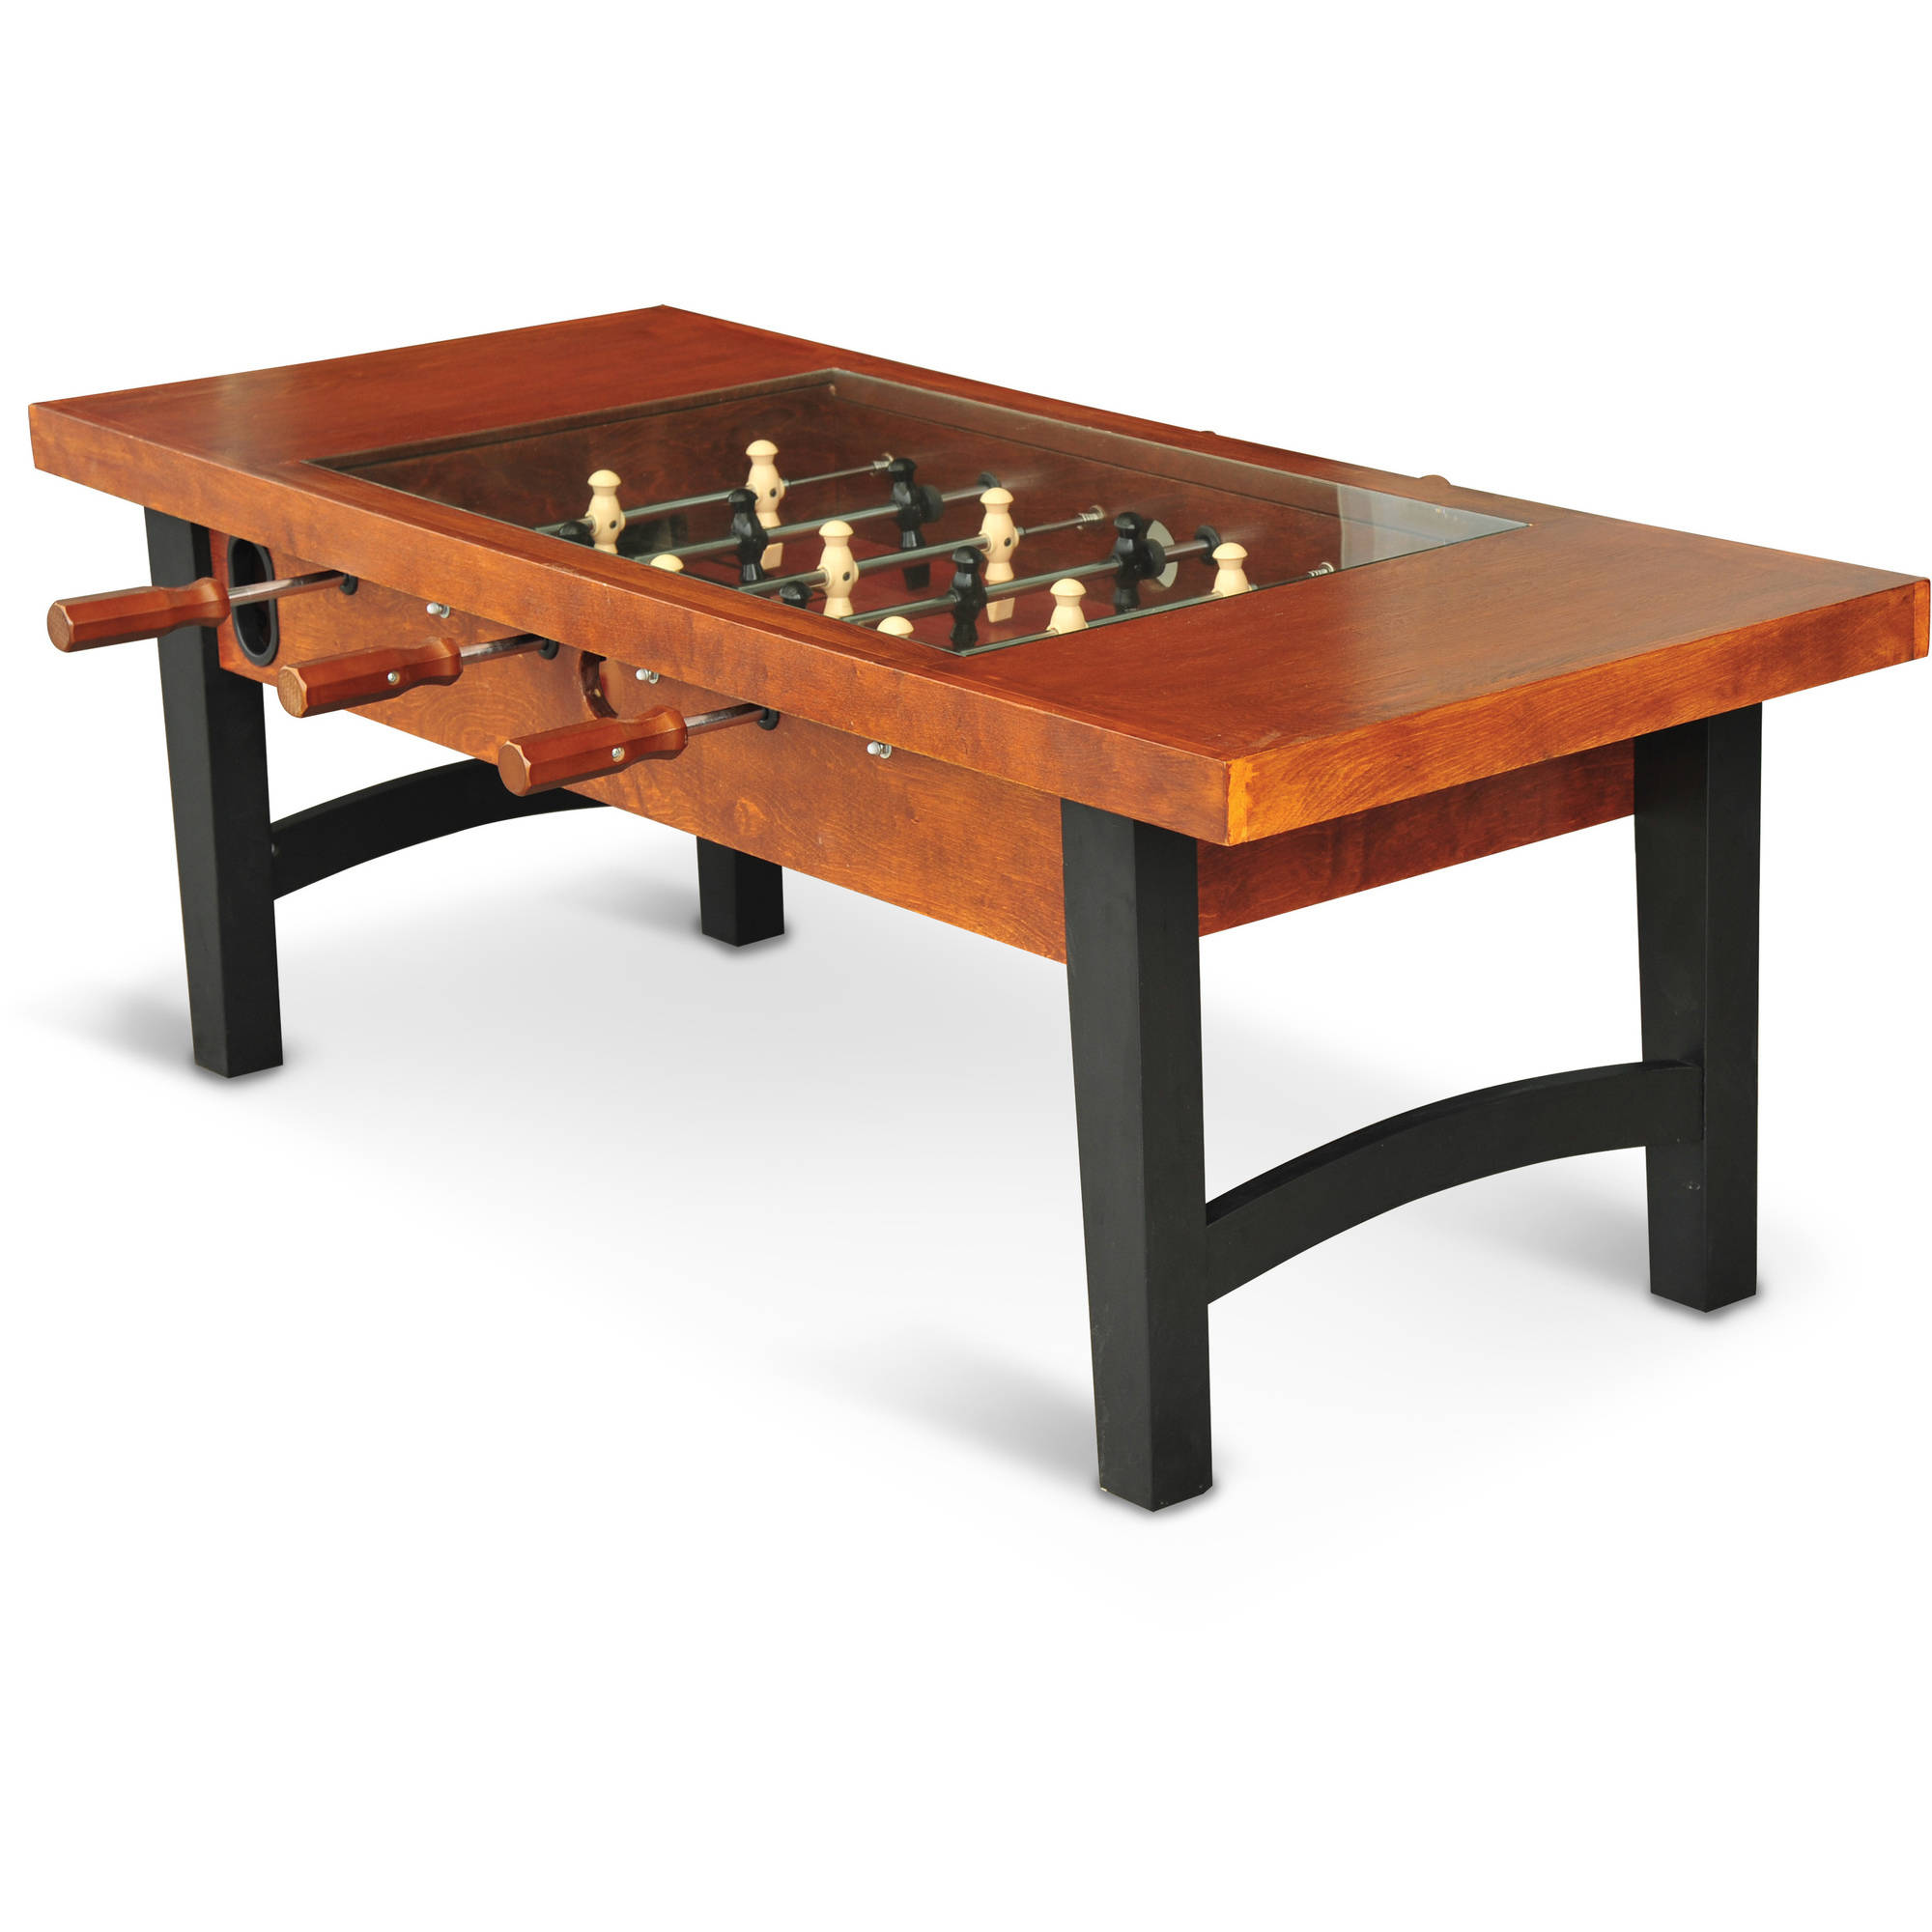 Popular EastPoint Sports Coffee Table Soccer Game